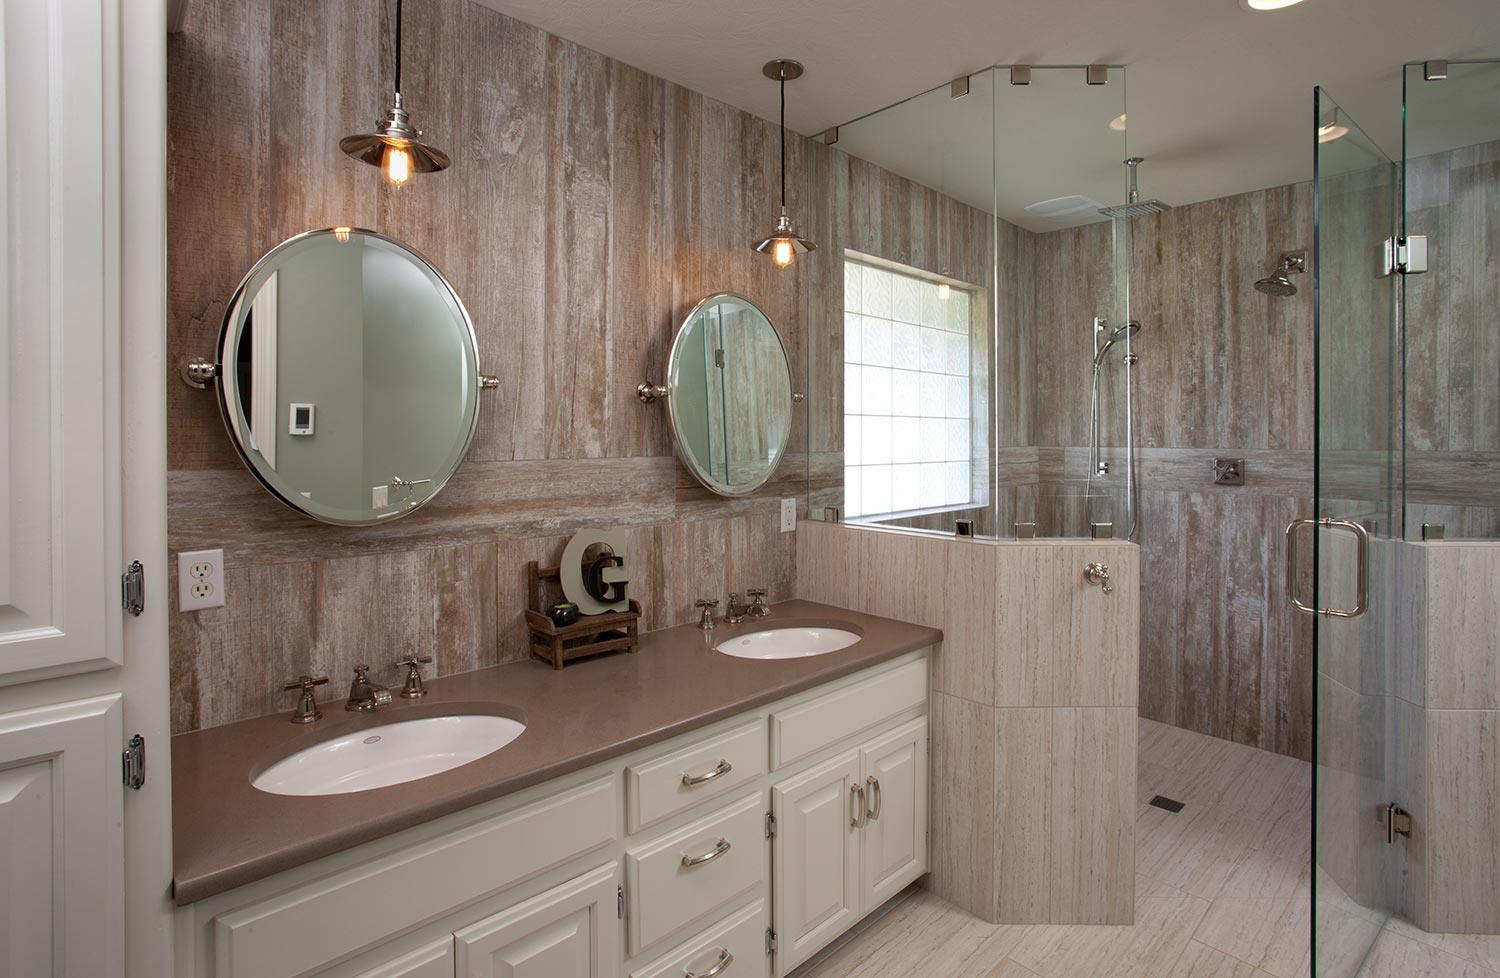 A modern luxury bathroom design with a double sink and shower